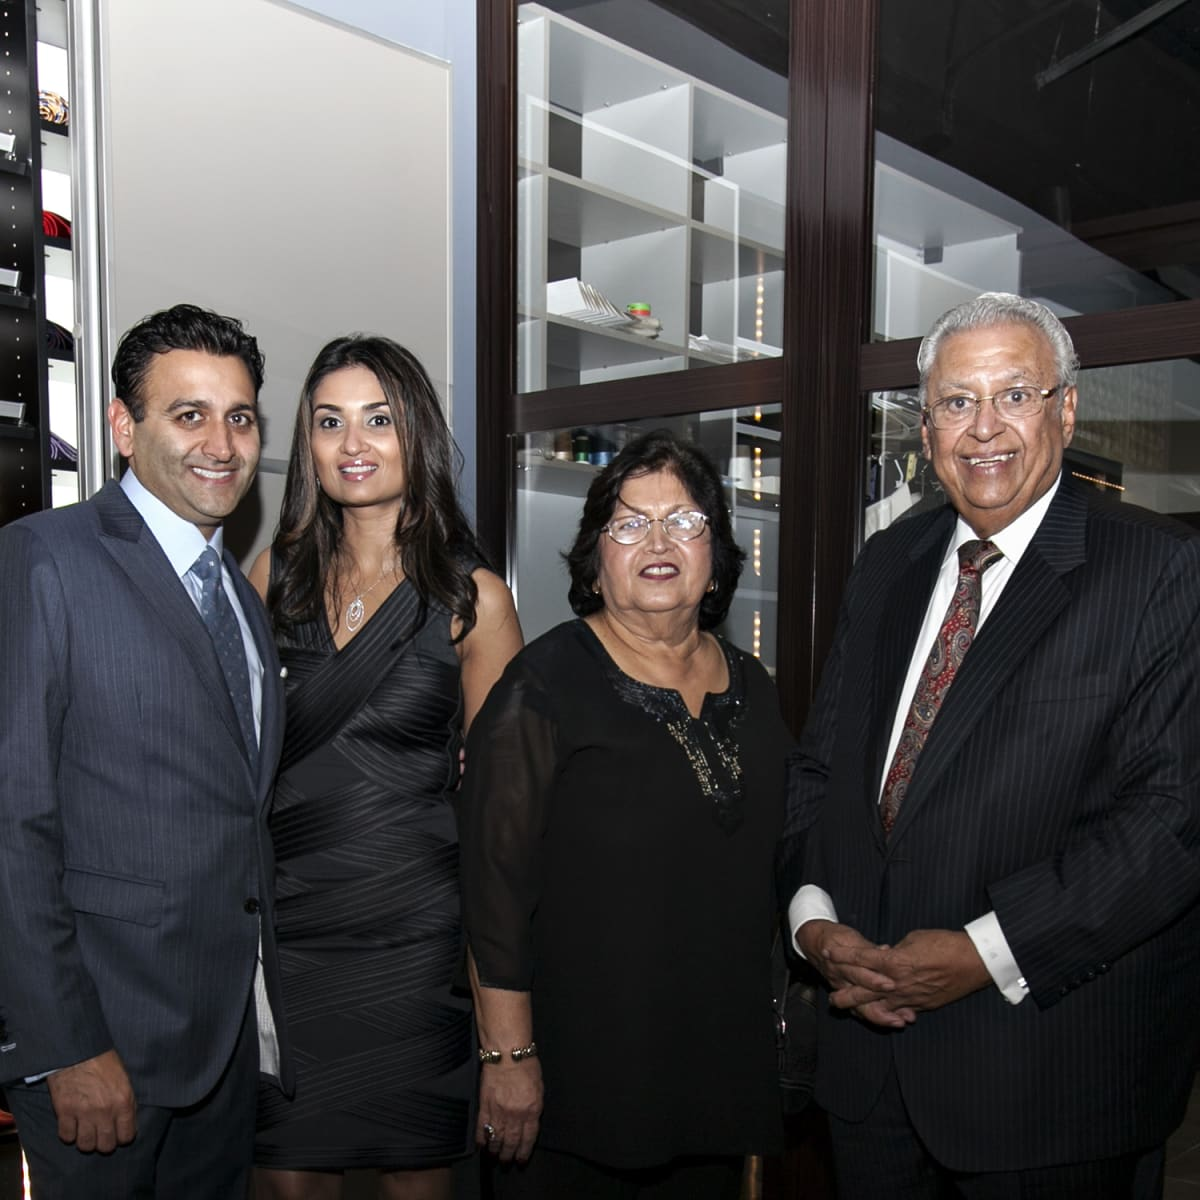 News, Shelby, Balani Opening, Nov. 2015, Sonny and Sheetal Balani, Neena and Peter Balani